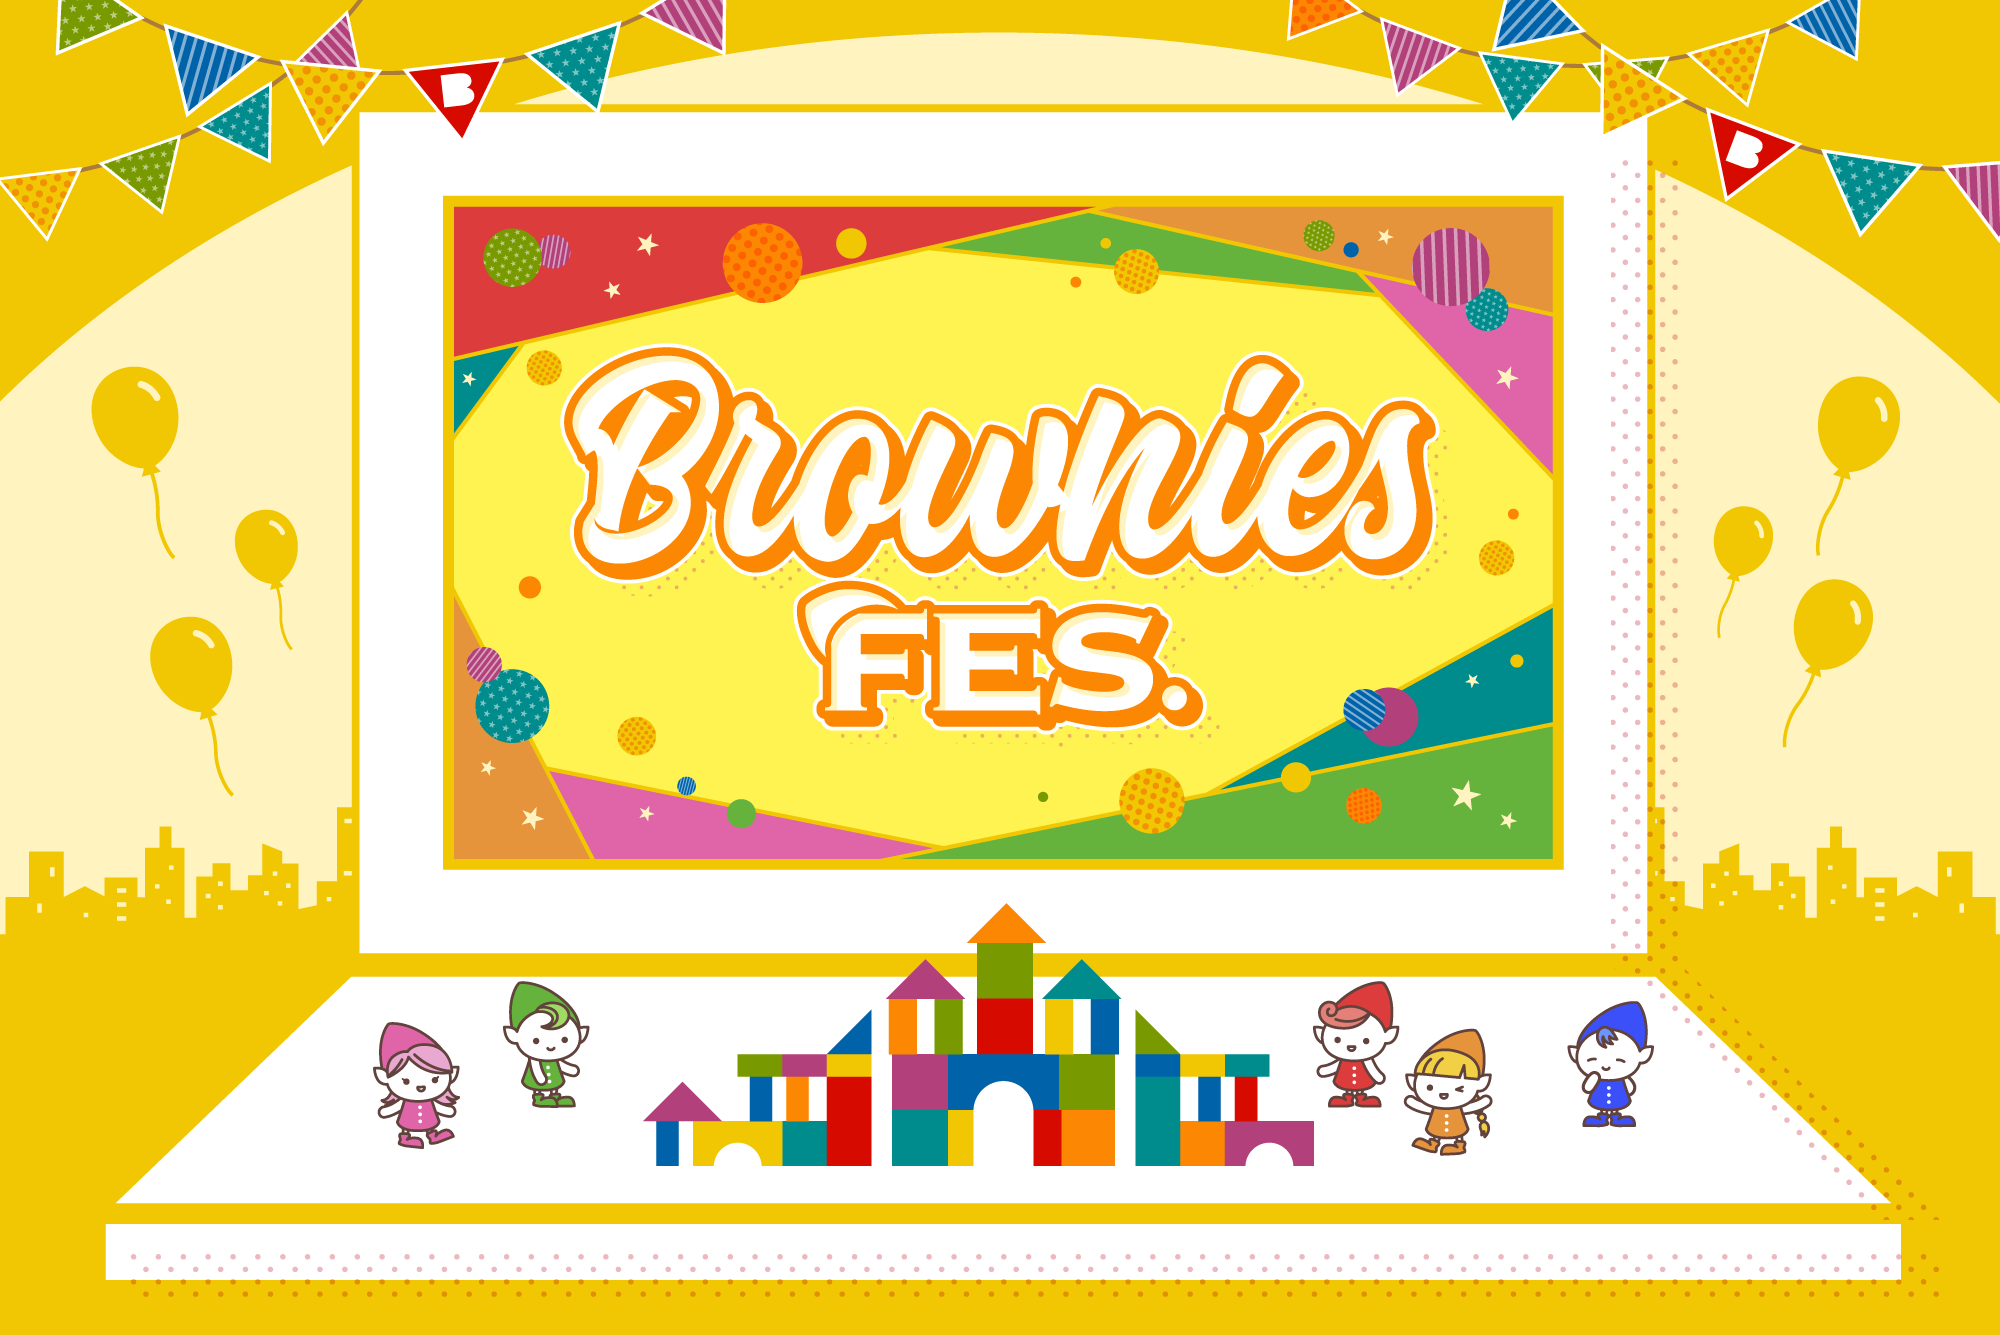 Brownies FES.